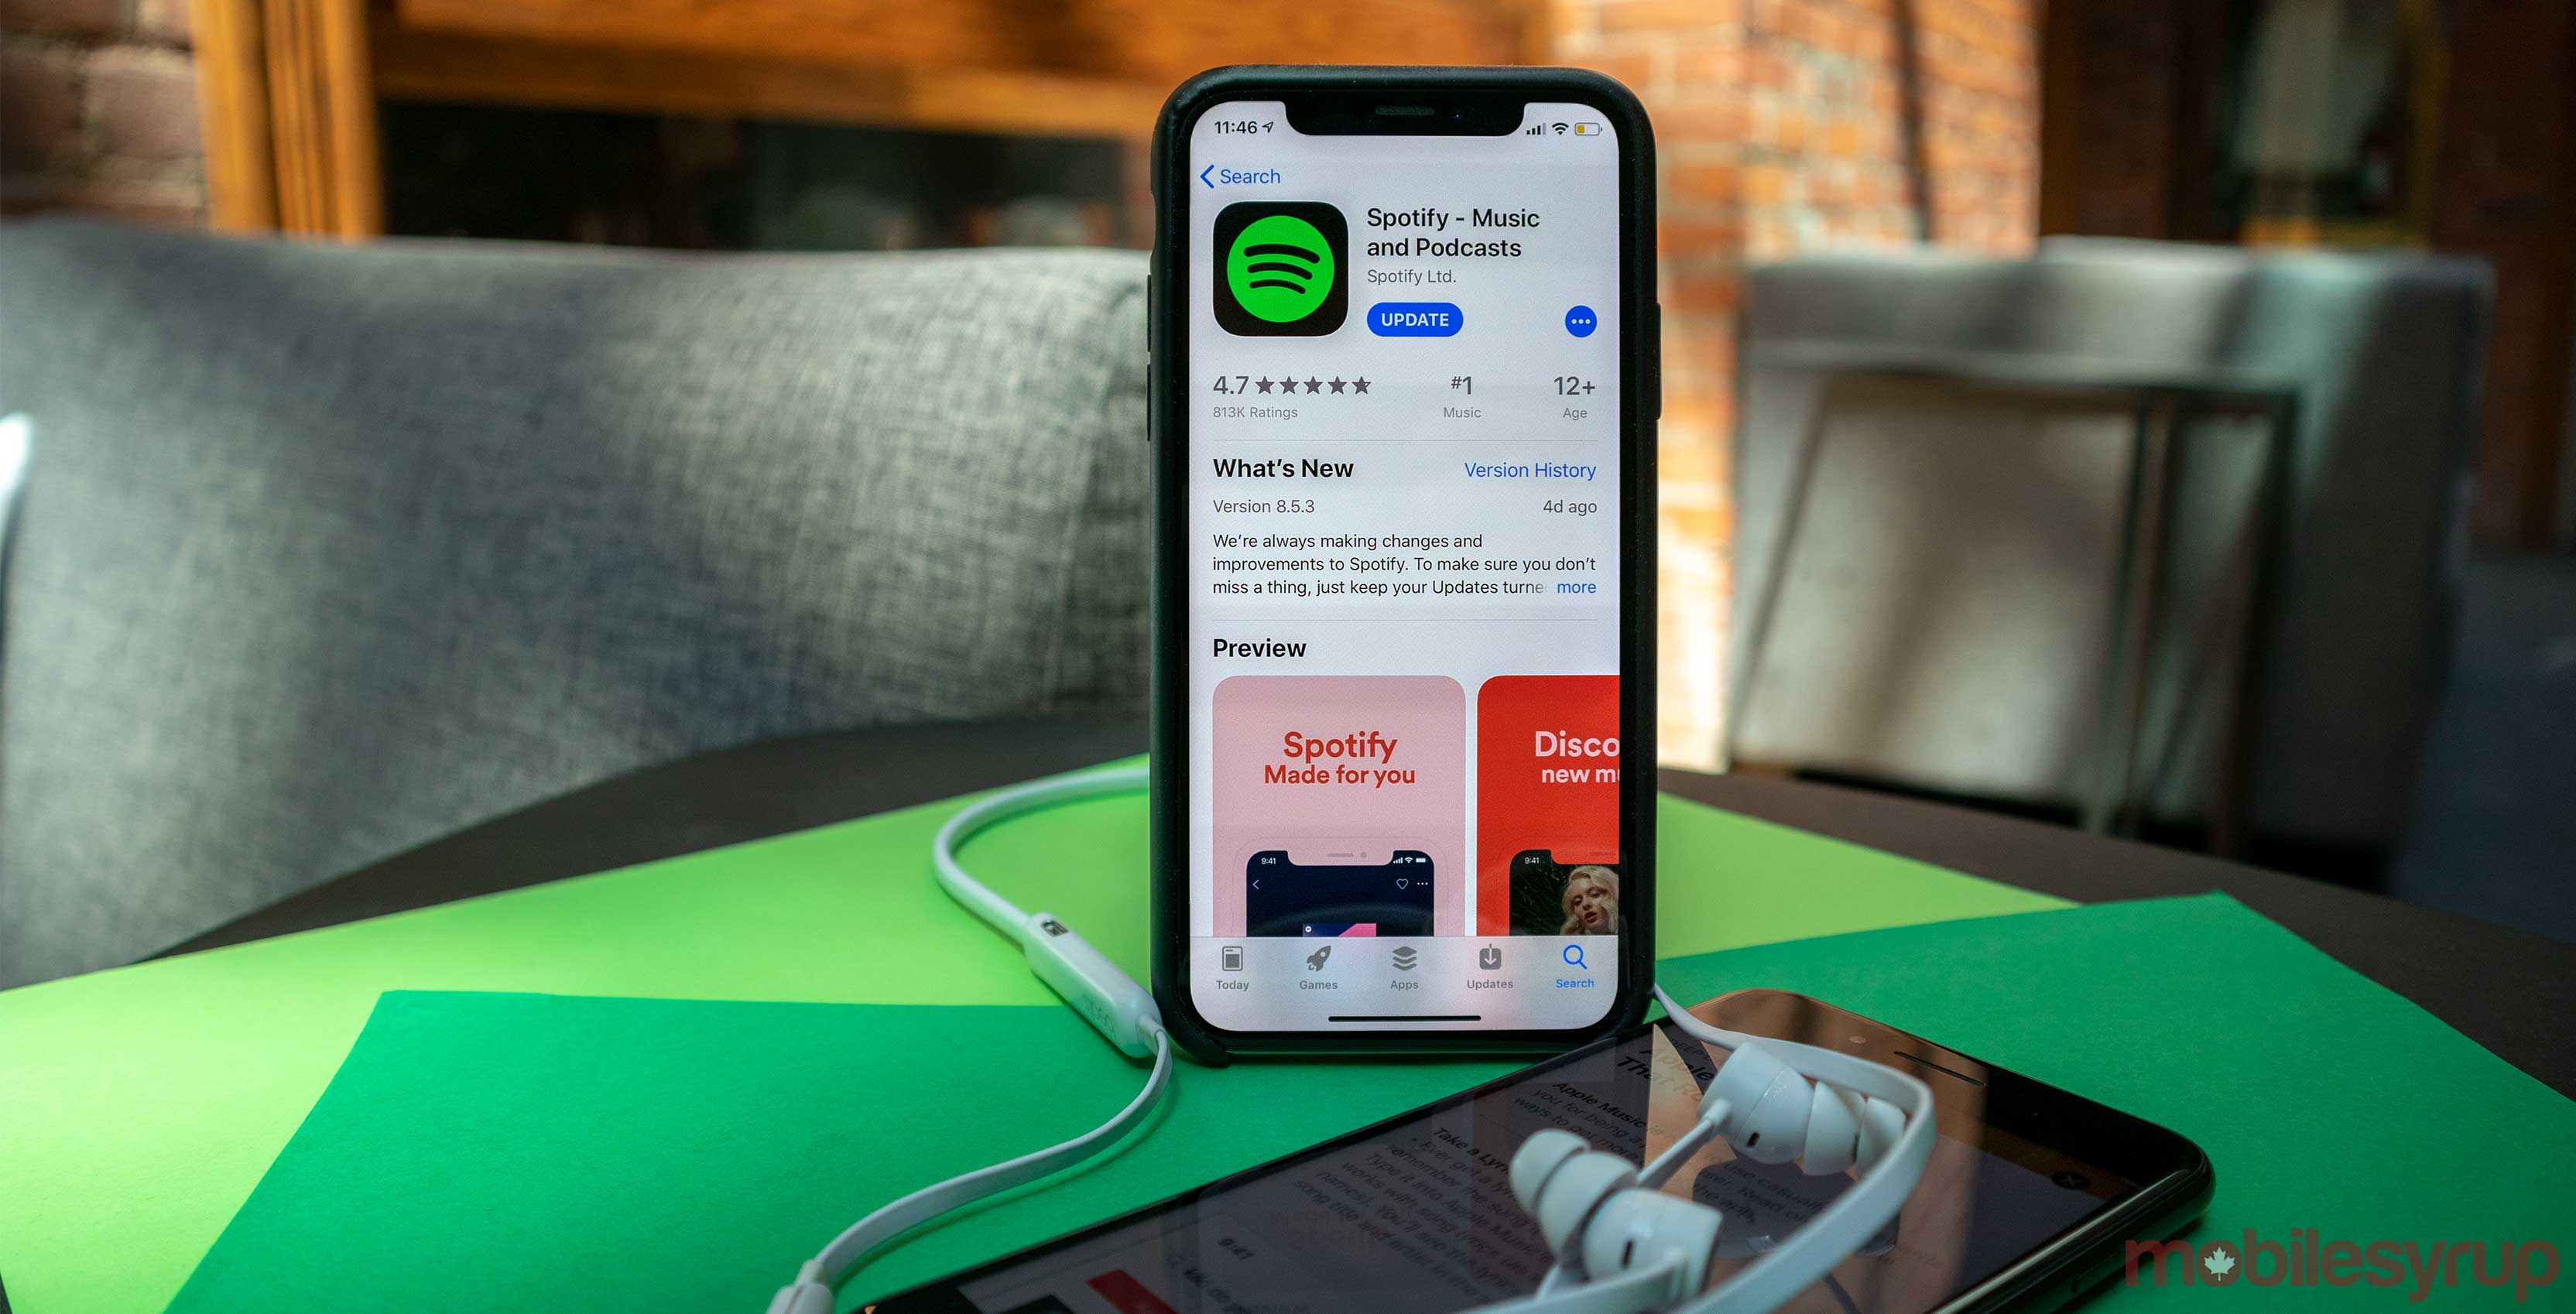 Spotify adding new features to Premium Family plan